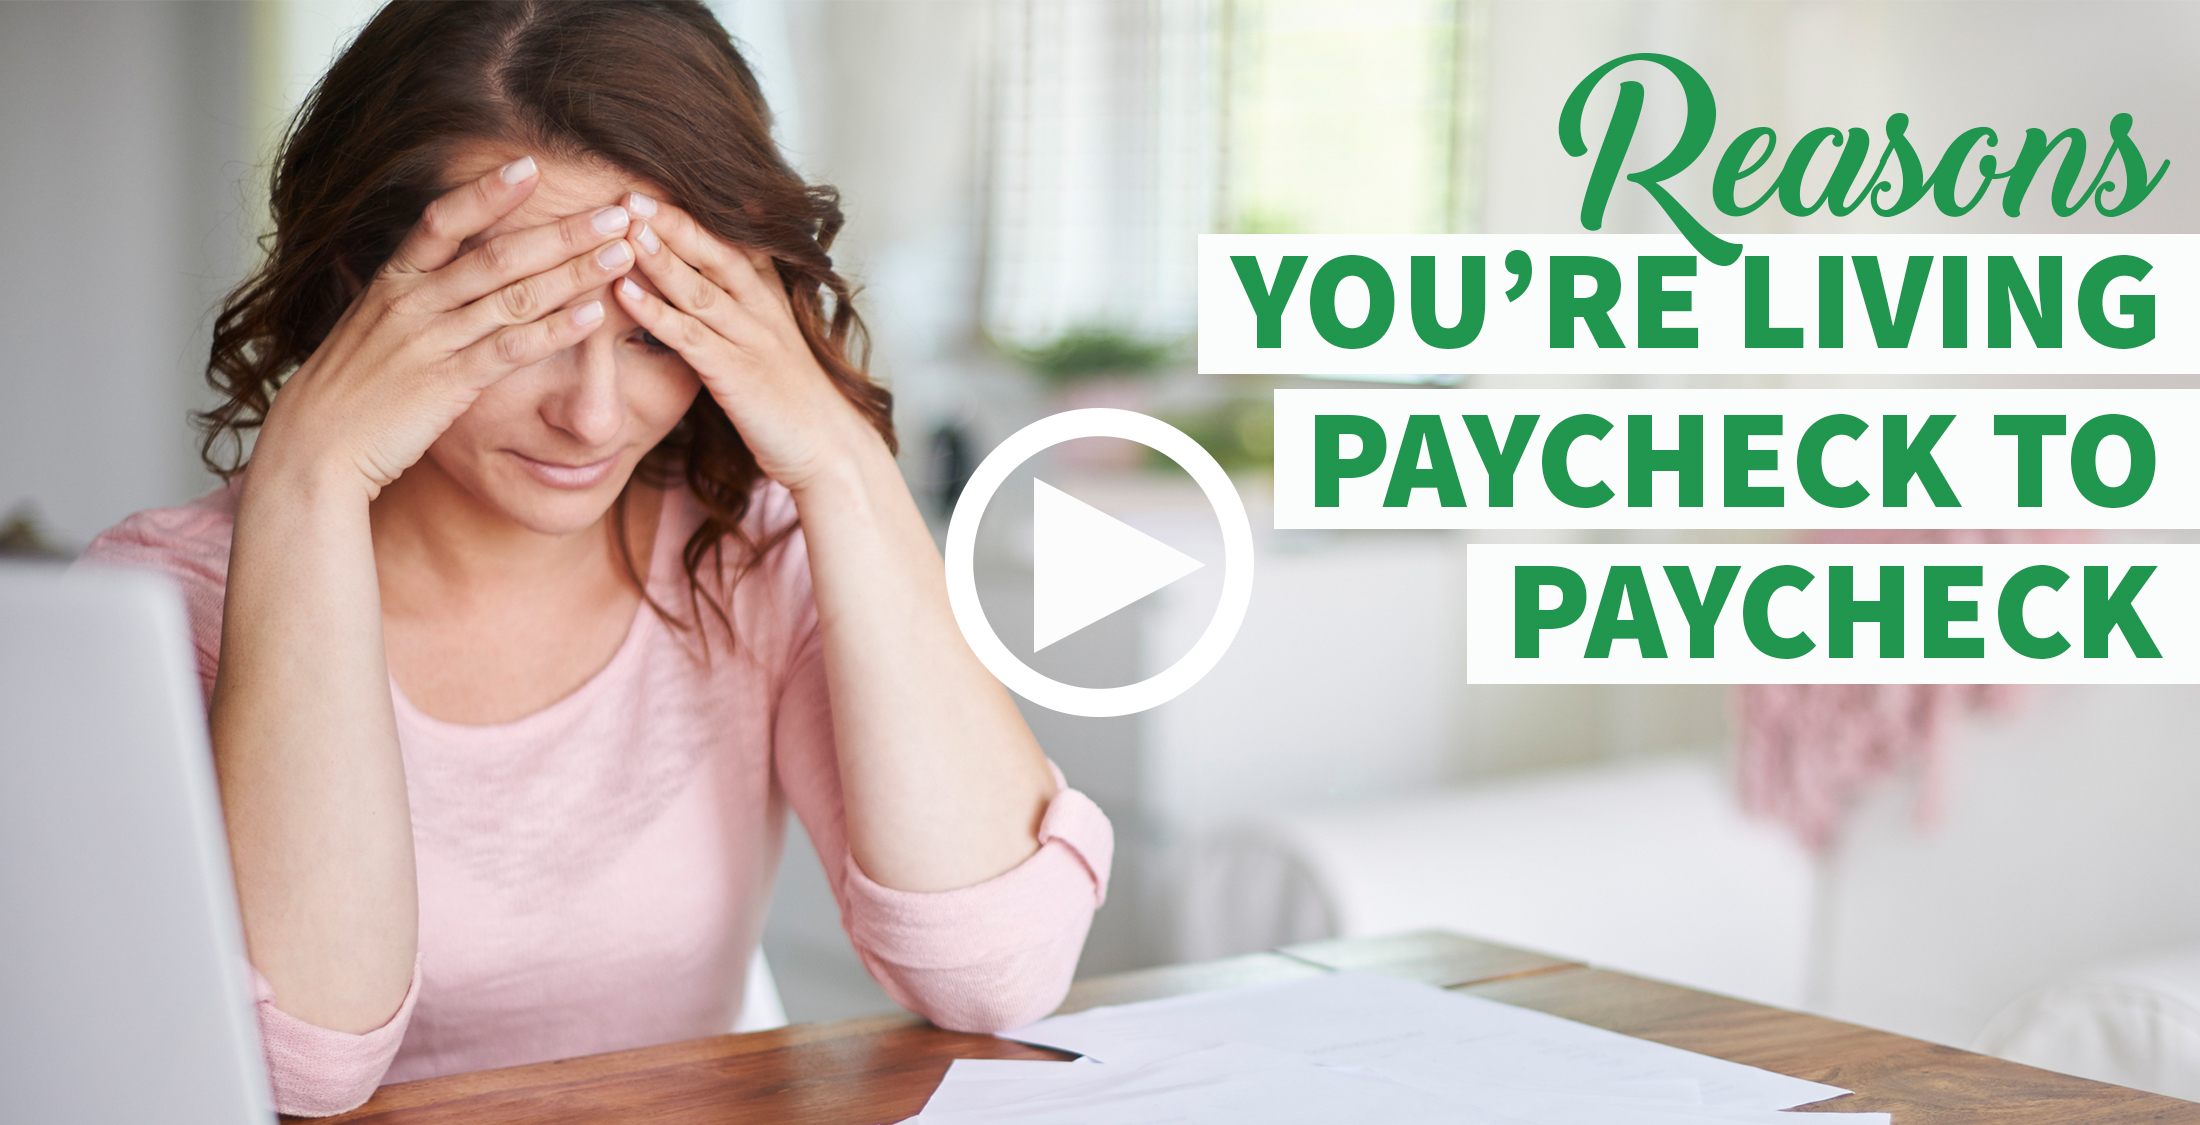 Reasons You're Still Living Paycheck to Paycheck